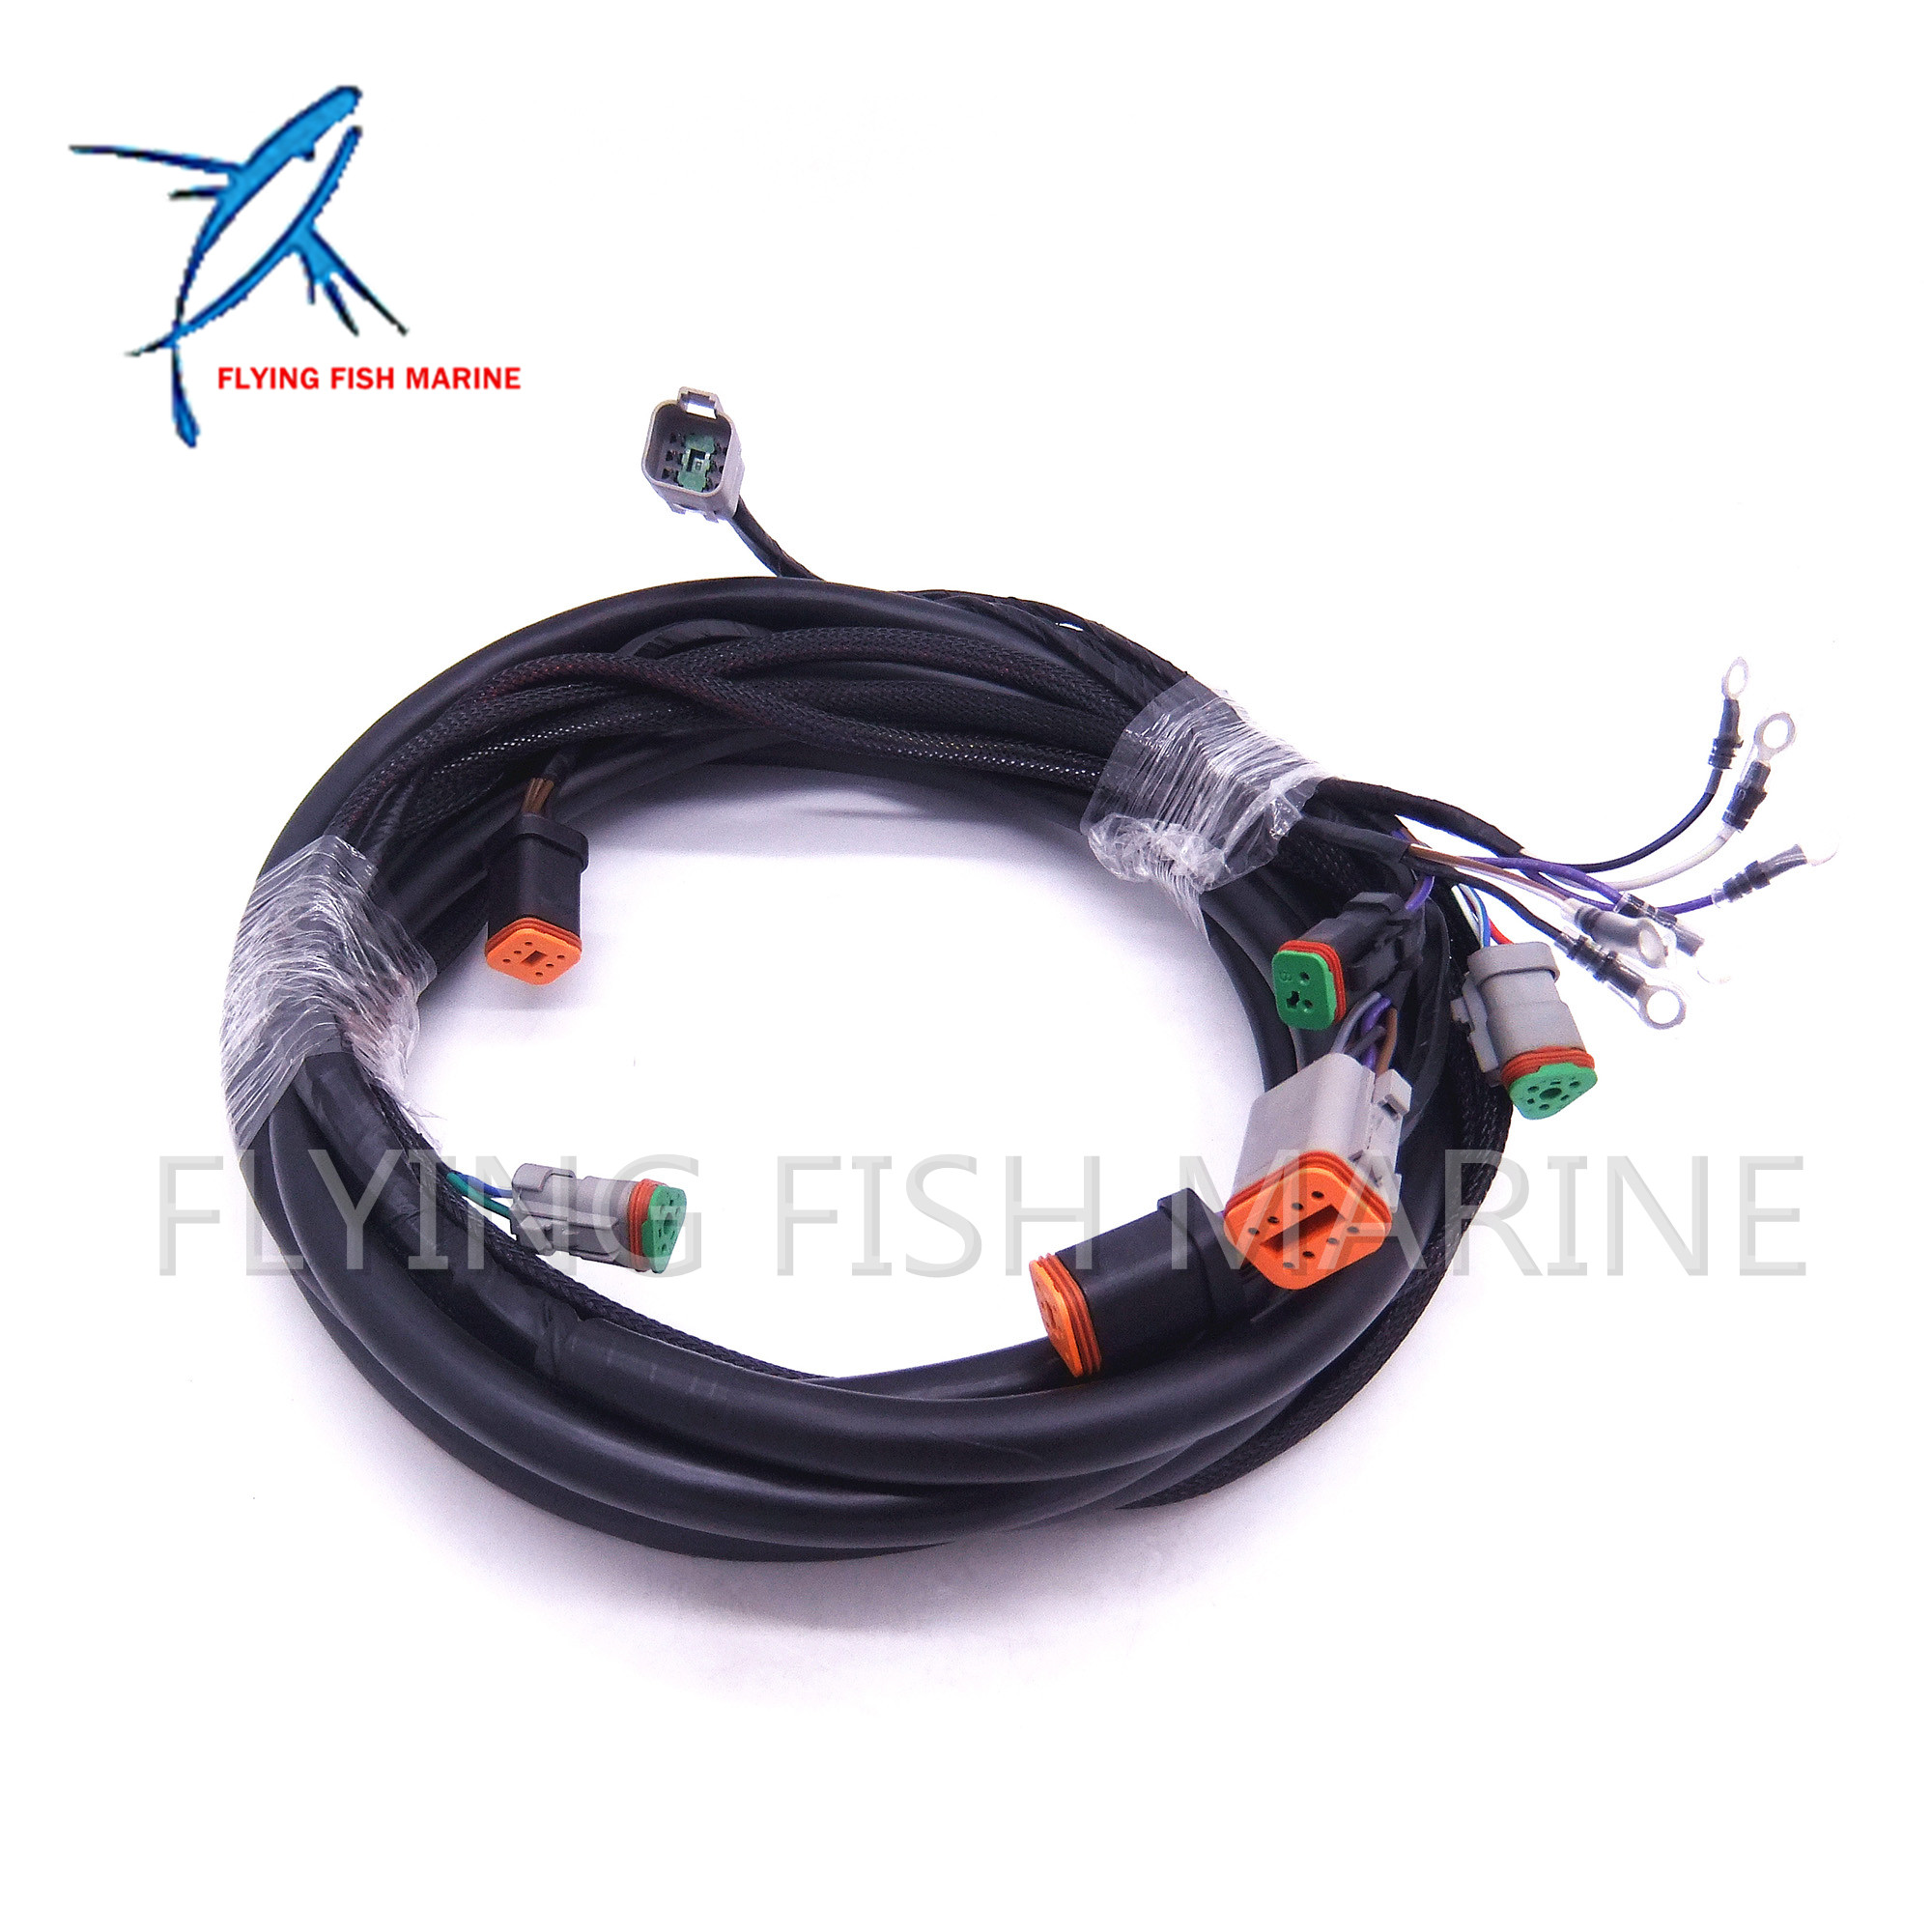 0176340 176340 New SystemCheck 15ft Main Modular Ignition Wiring Harness Cable for Evinrude Johnson OMC Outboard Motor